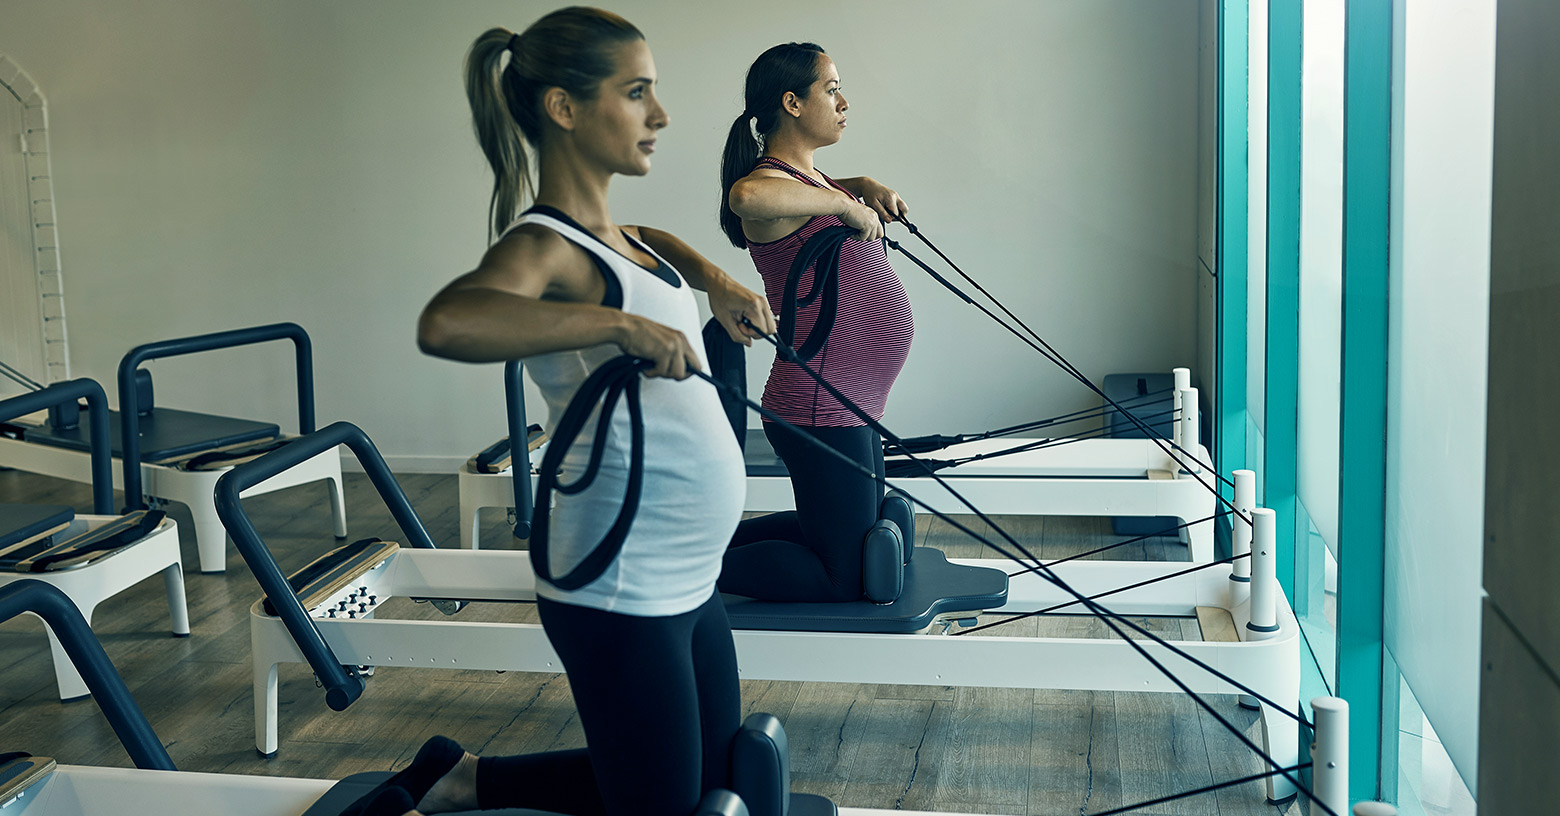 functional training in pregnancy - funktionelles Training während der Schwangerschaf - l'entraînement fonctionnel pendant la grossesse - EVO Fitness